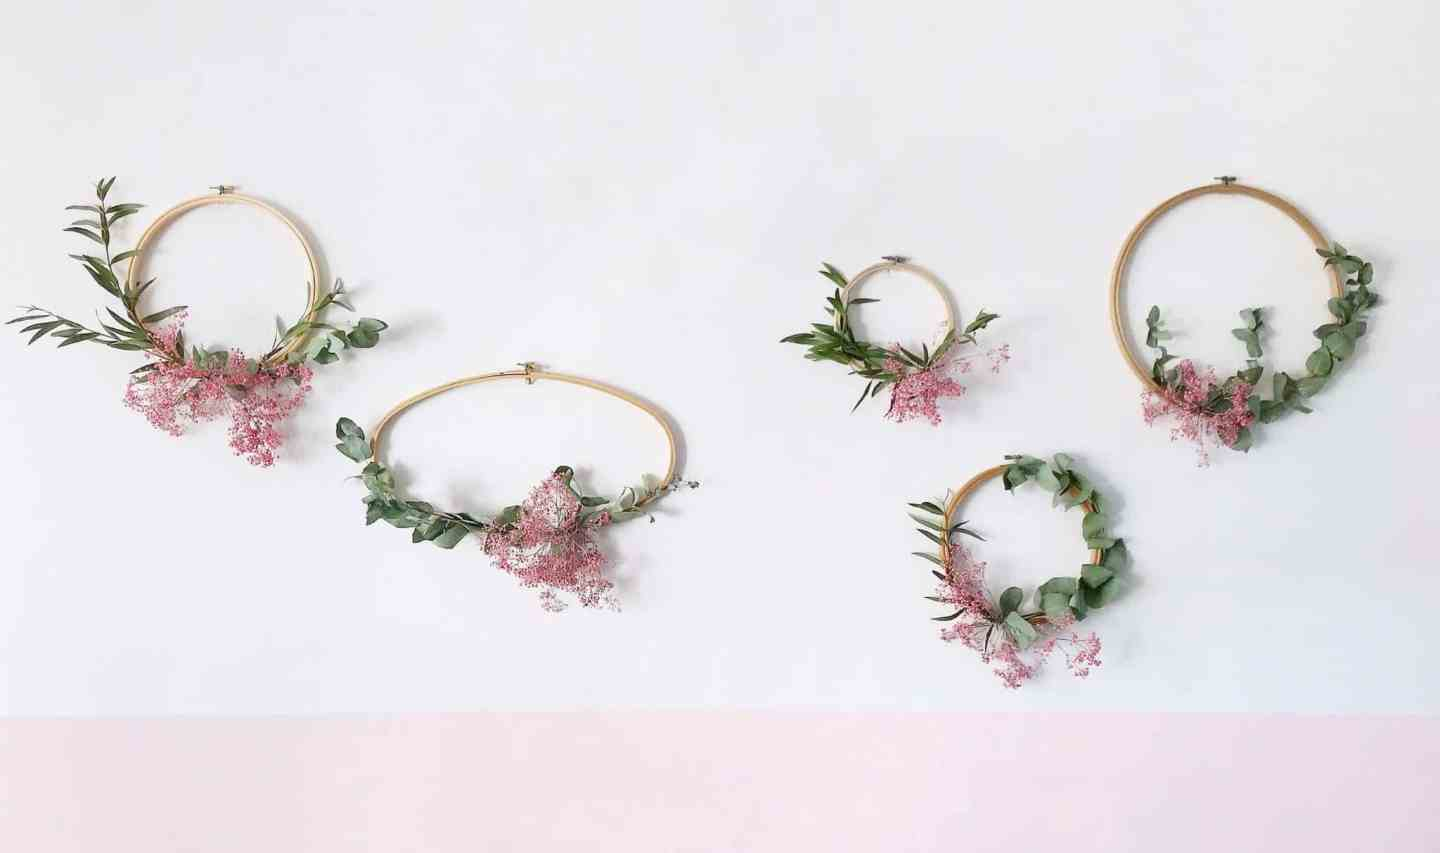 How To Make Wreaths with Embroidery Hoops and Foliage